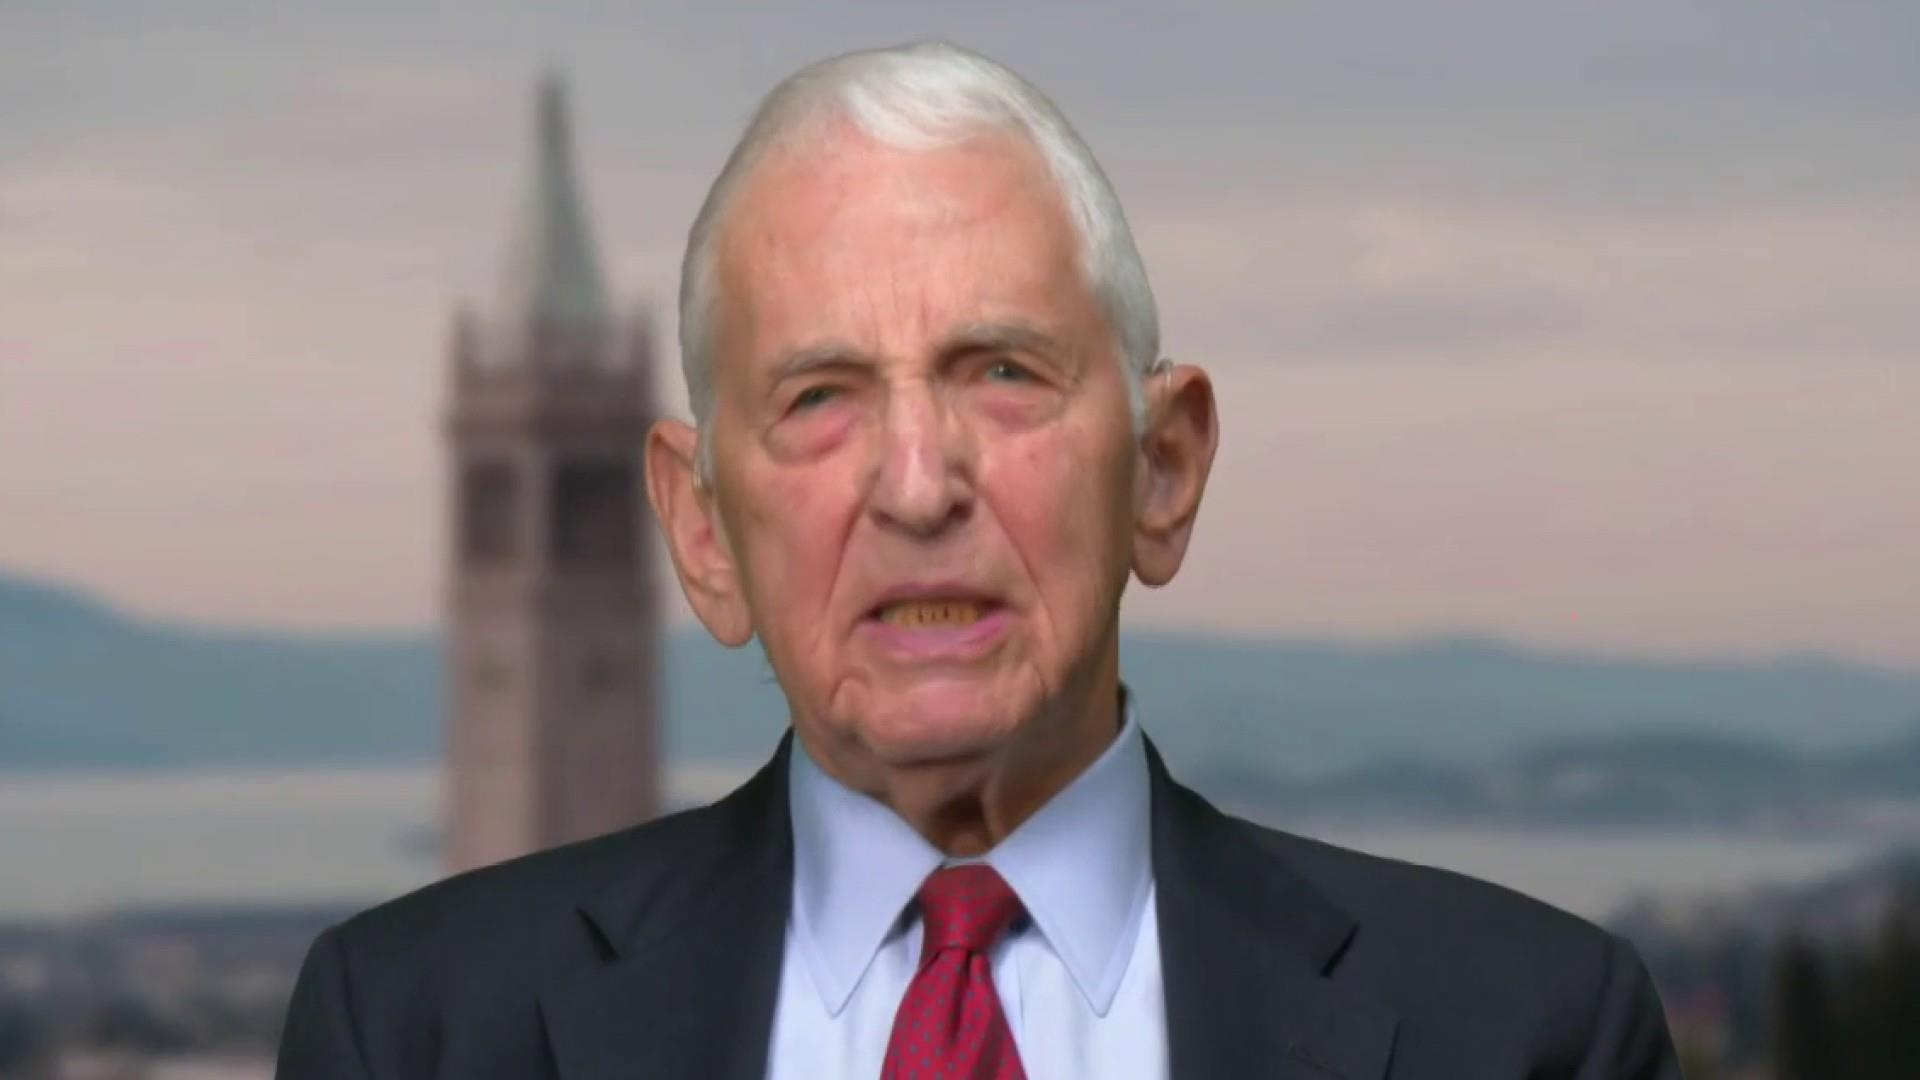 Whistleblower Daniel Ellsberg: Ukraine plot shows Trump now a 'domestic enemy' to the U.S.